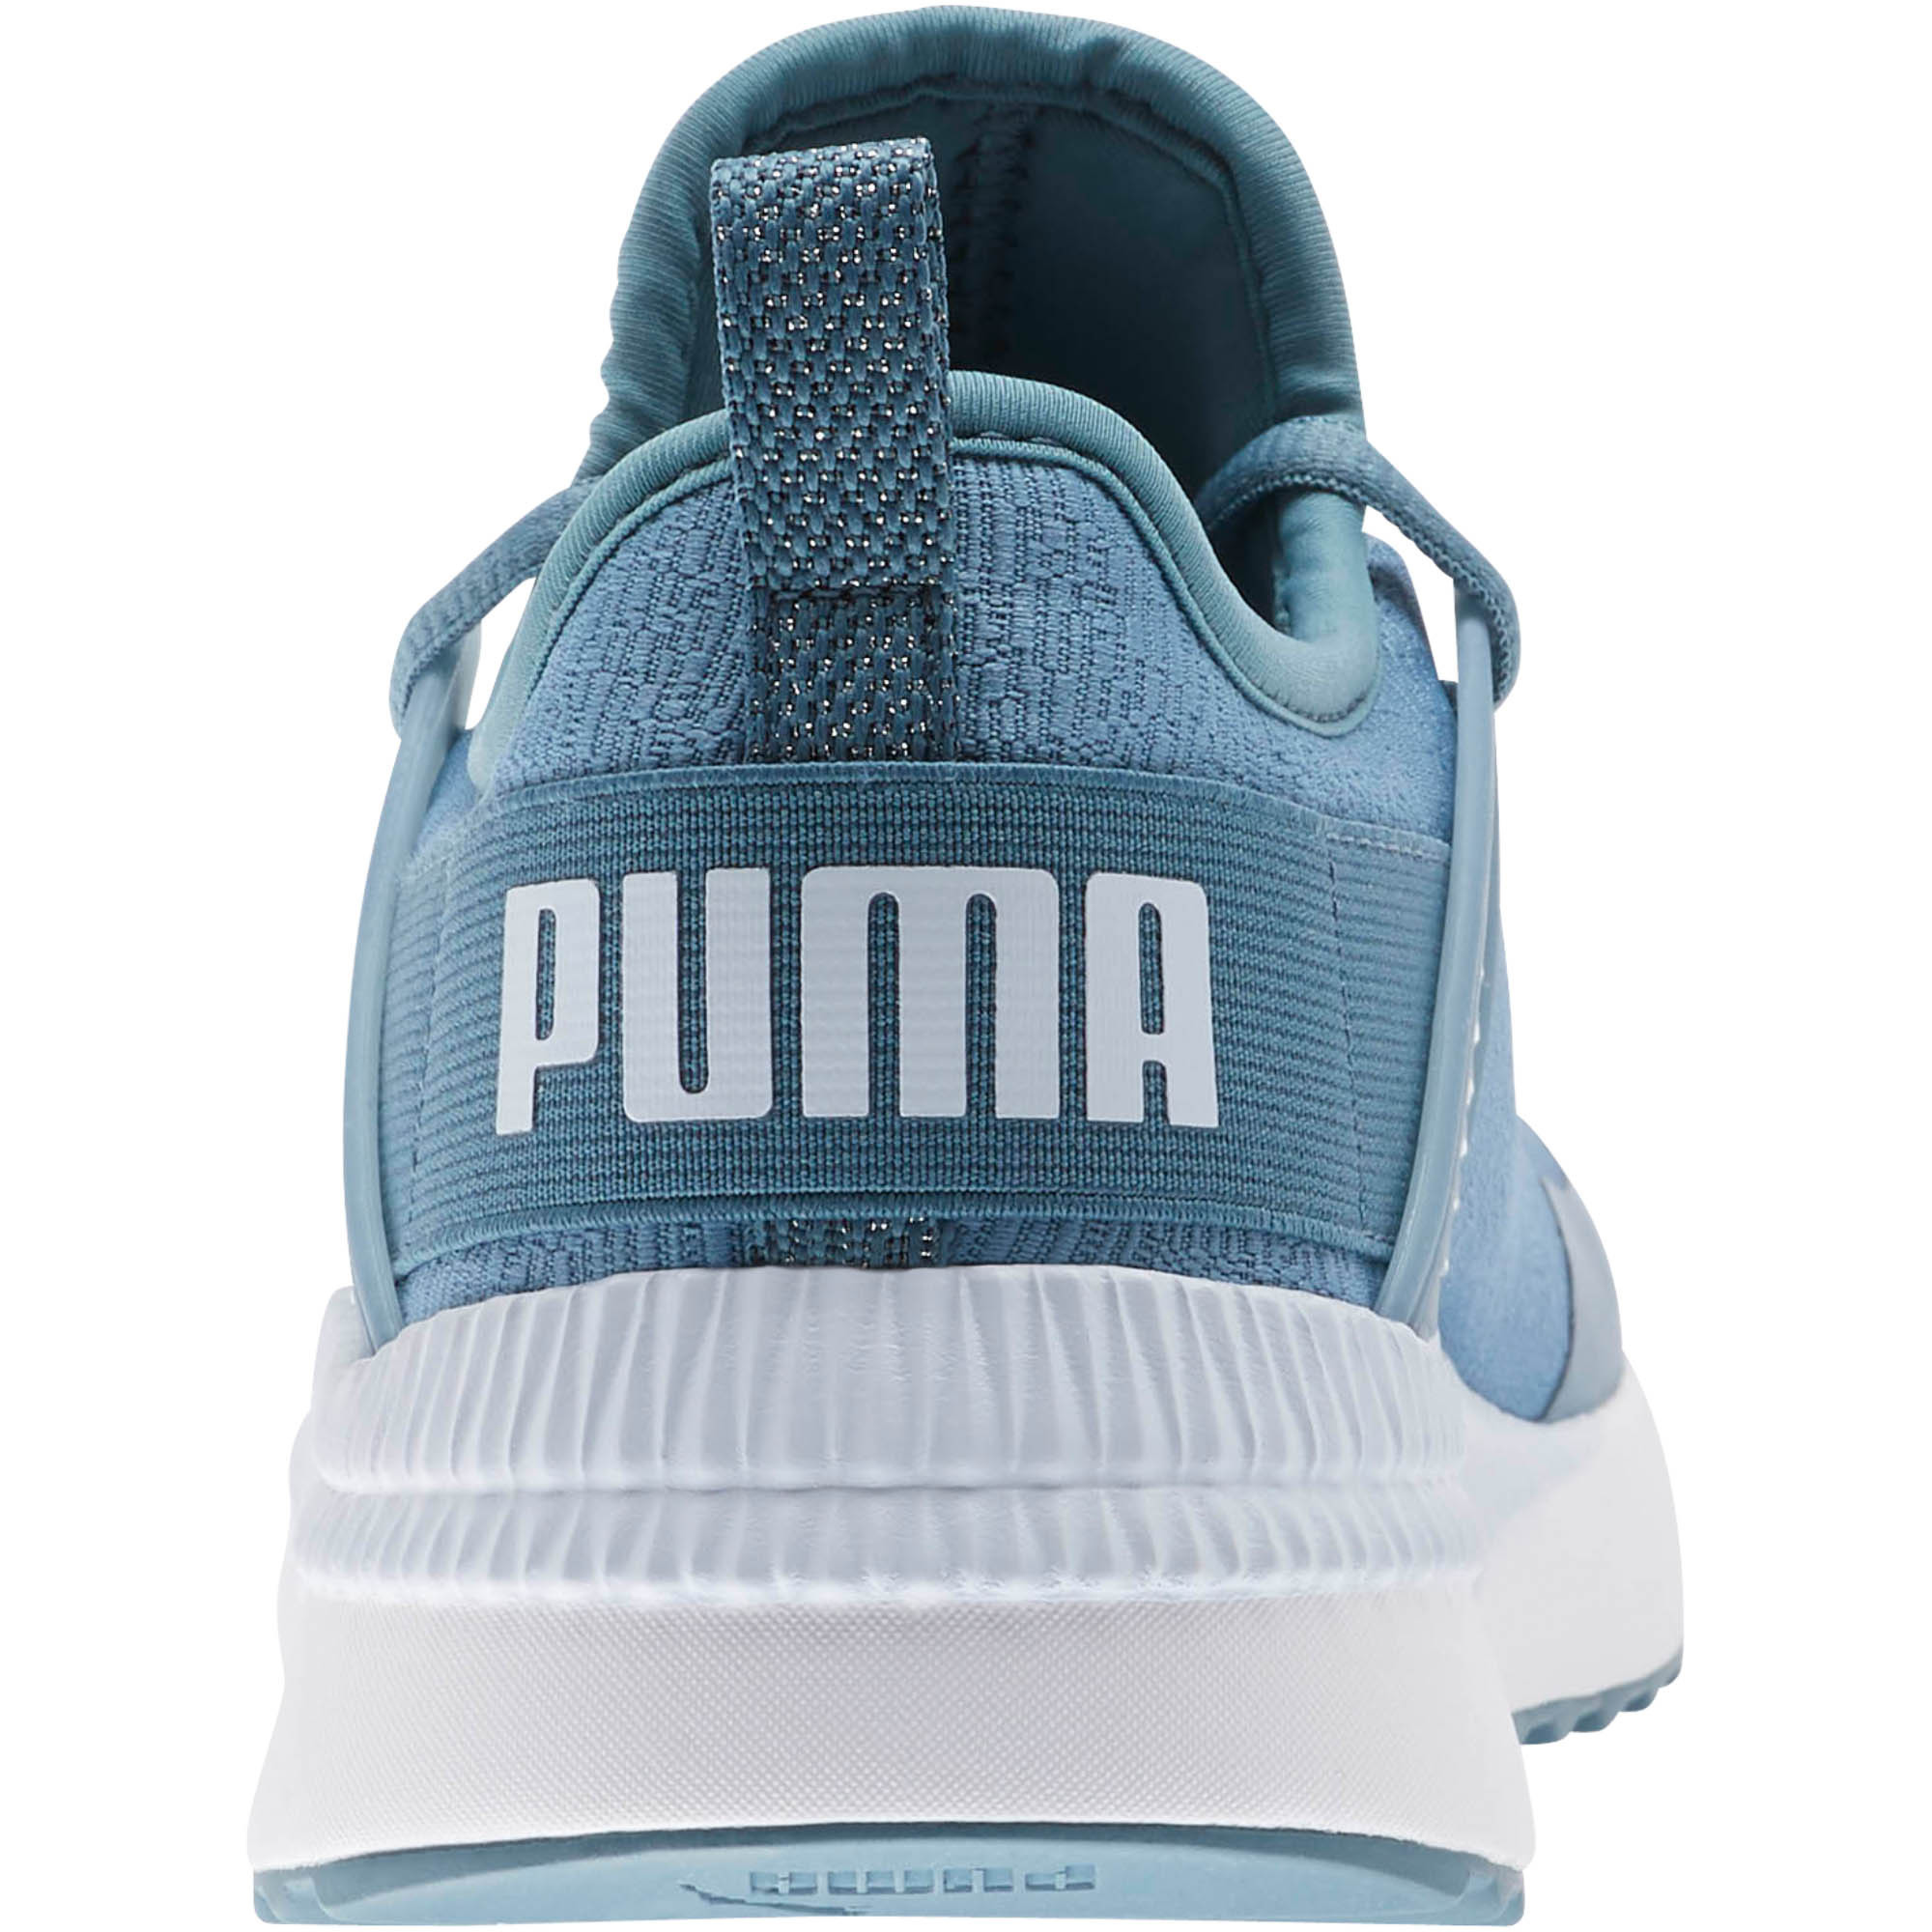 PUMA-Pacer-Next-Cage-Glitter-Women-039-s-Sneakers-Women-Shoe-Basics thumbnail 13